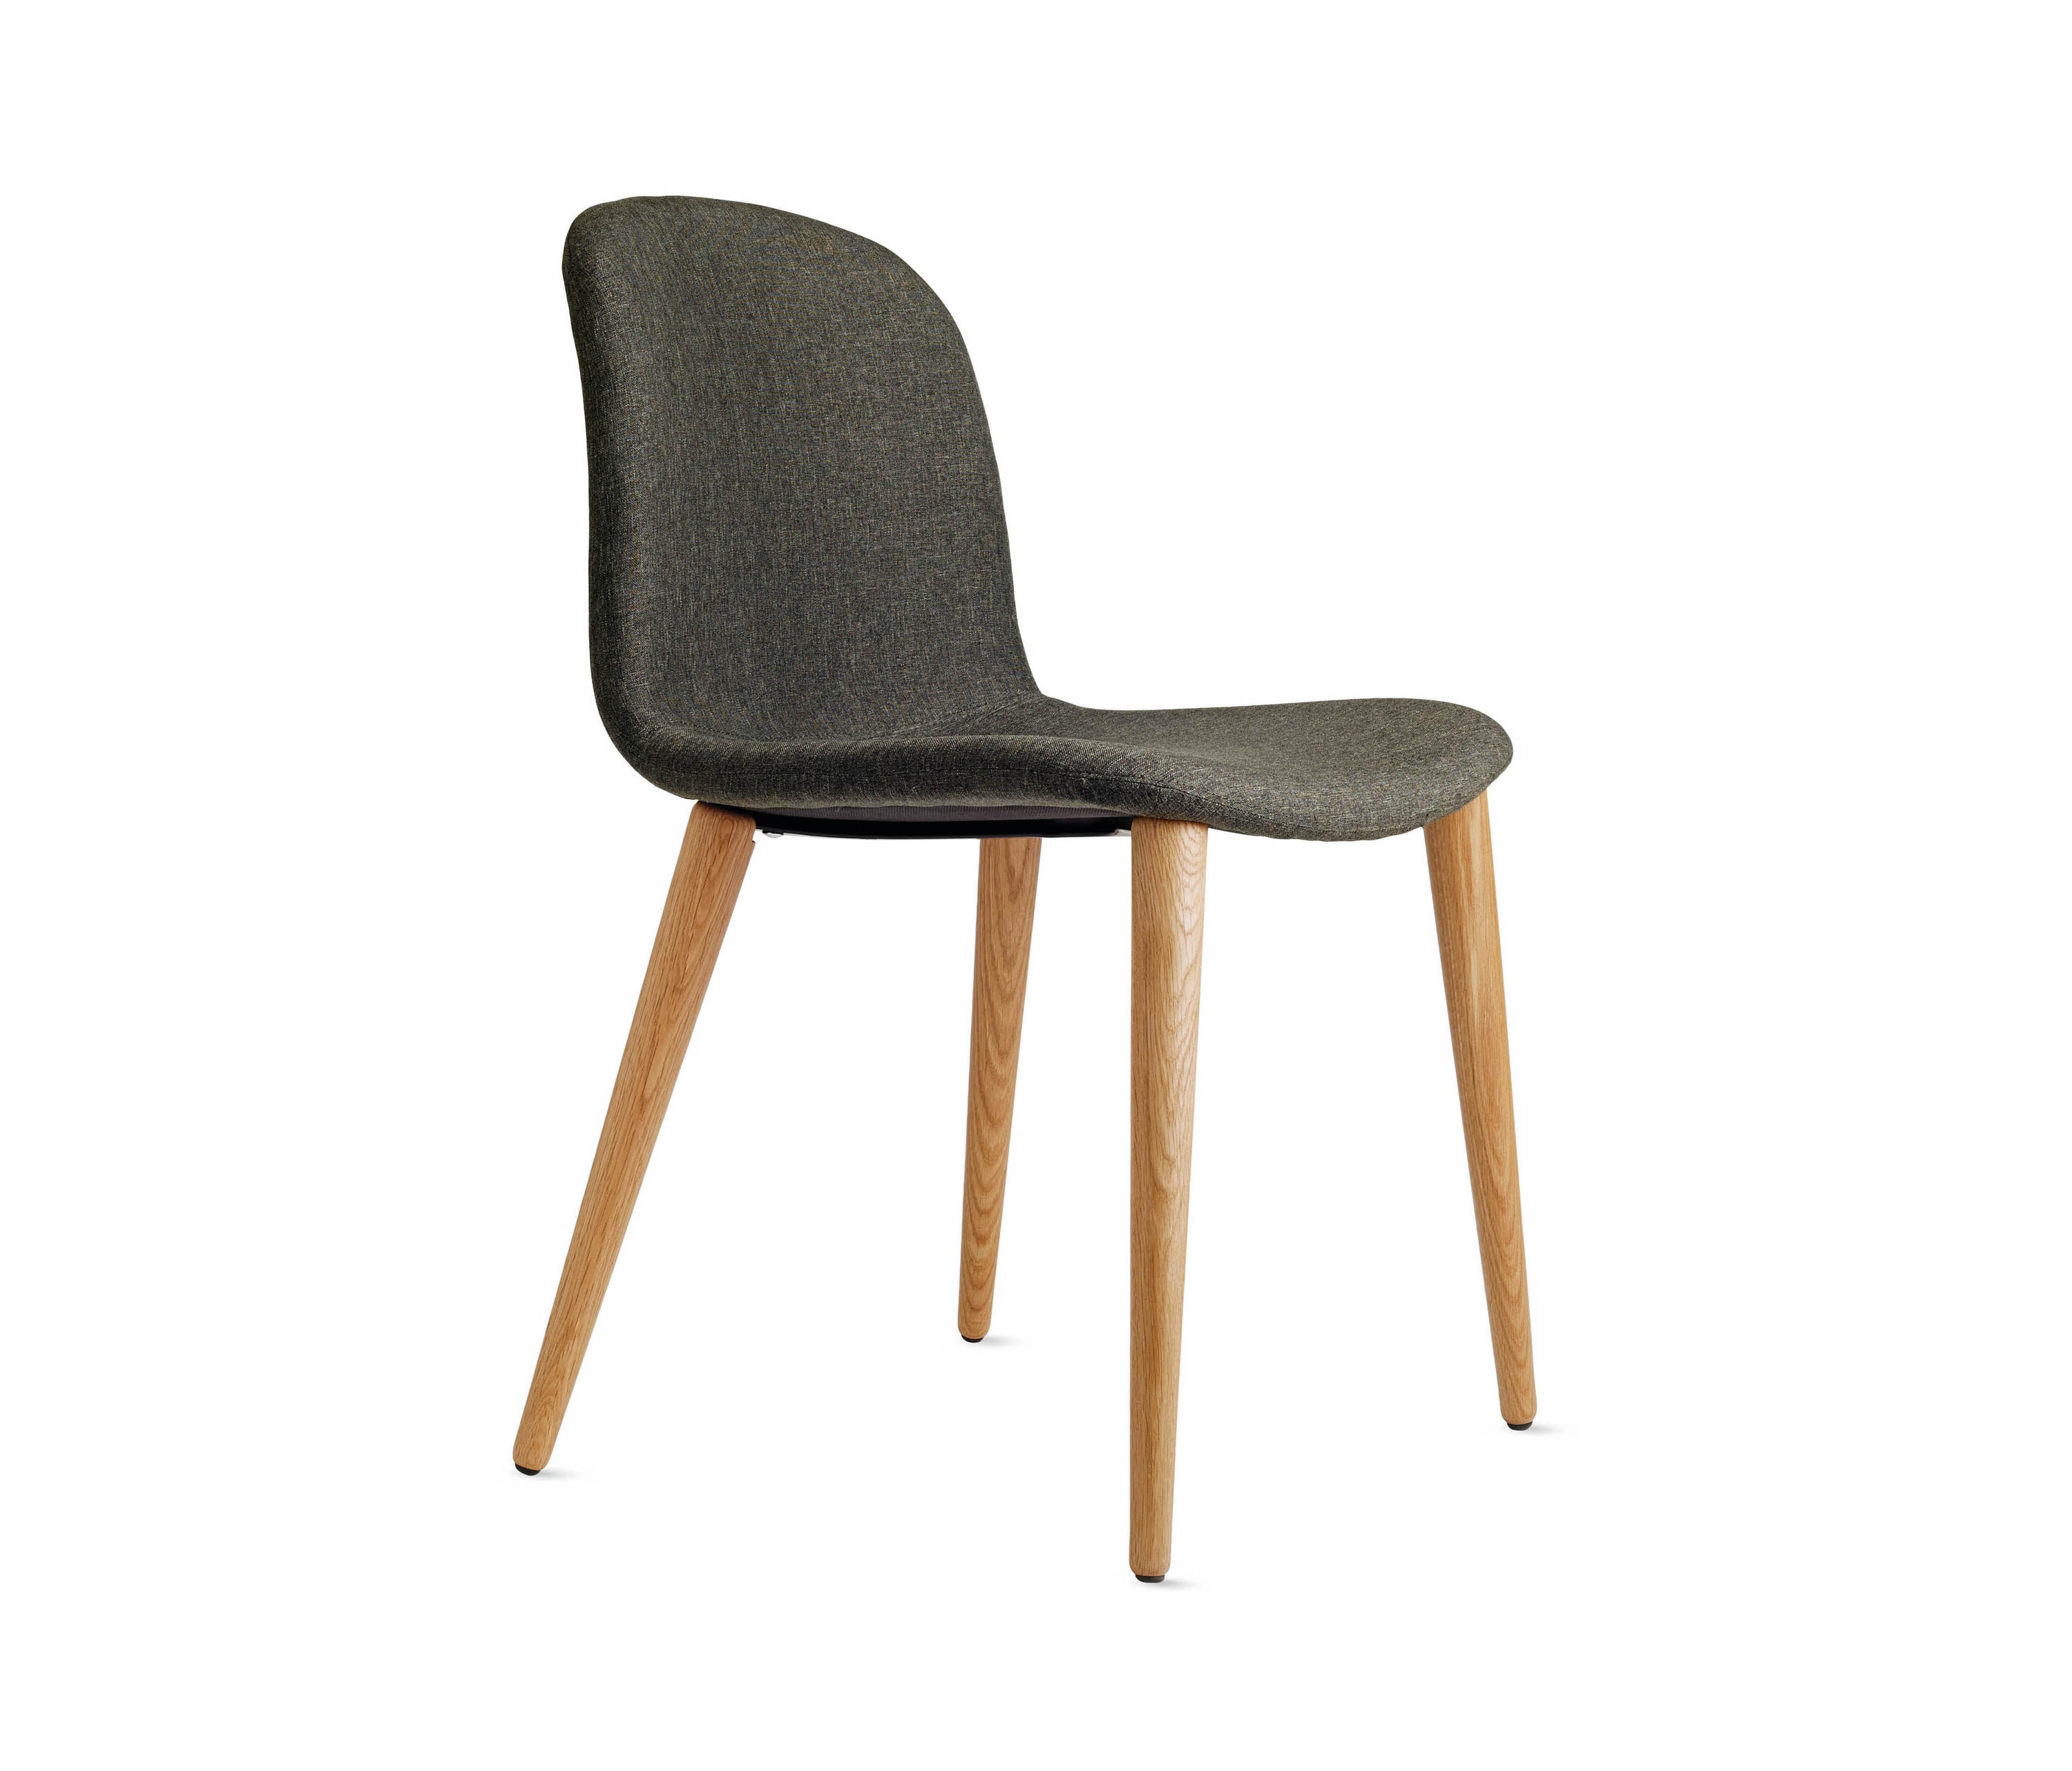 chair design within reach carolina and table bacco in fabric oak legs chairs from by